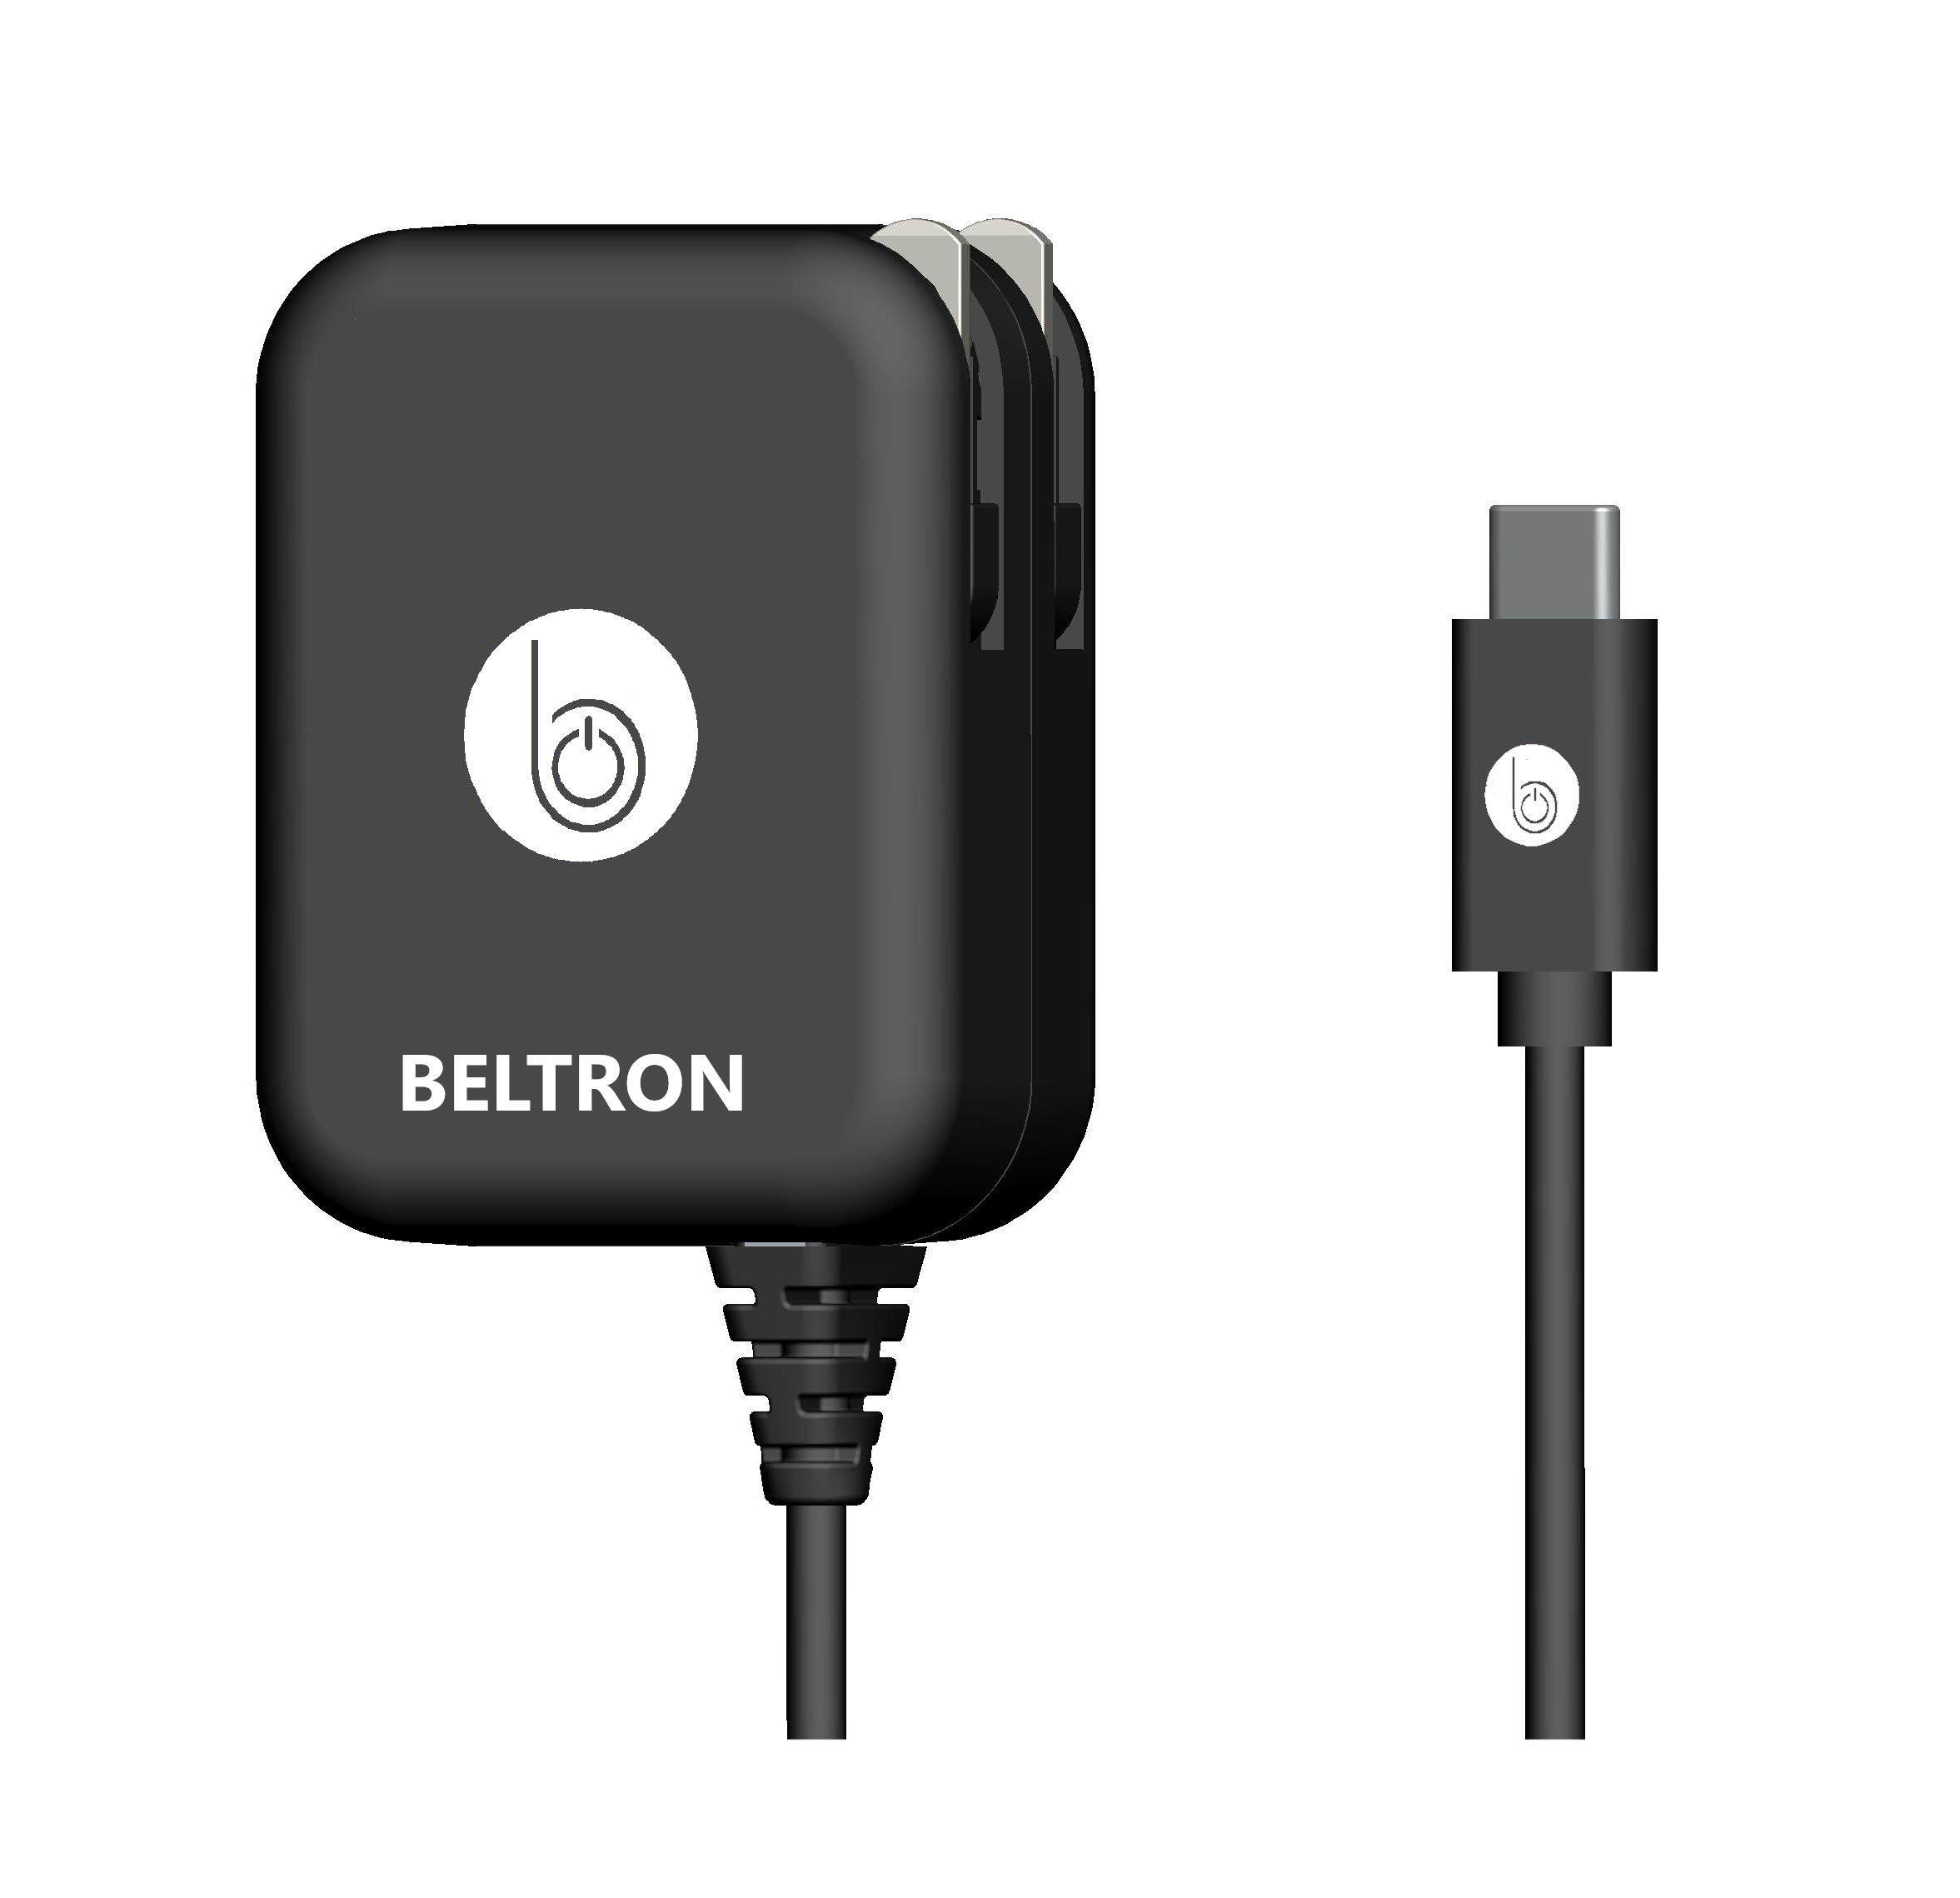 USB-C Charger, BELTRON Turbo Fast Type-C USB Wall Charger 5V / 3 AMP 30W with Built-in Cable (Compatible with: iPad Pro 3rd Generation, Galaxy S10 Series, OnePlus 7T, Pixel 4 & All Type C USB Devices)